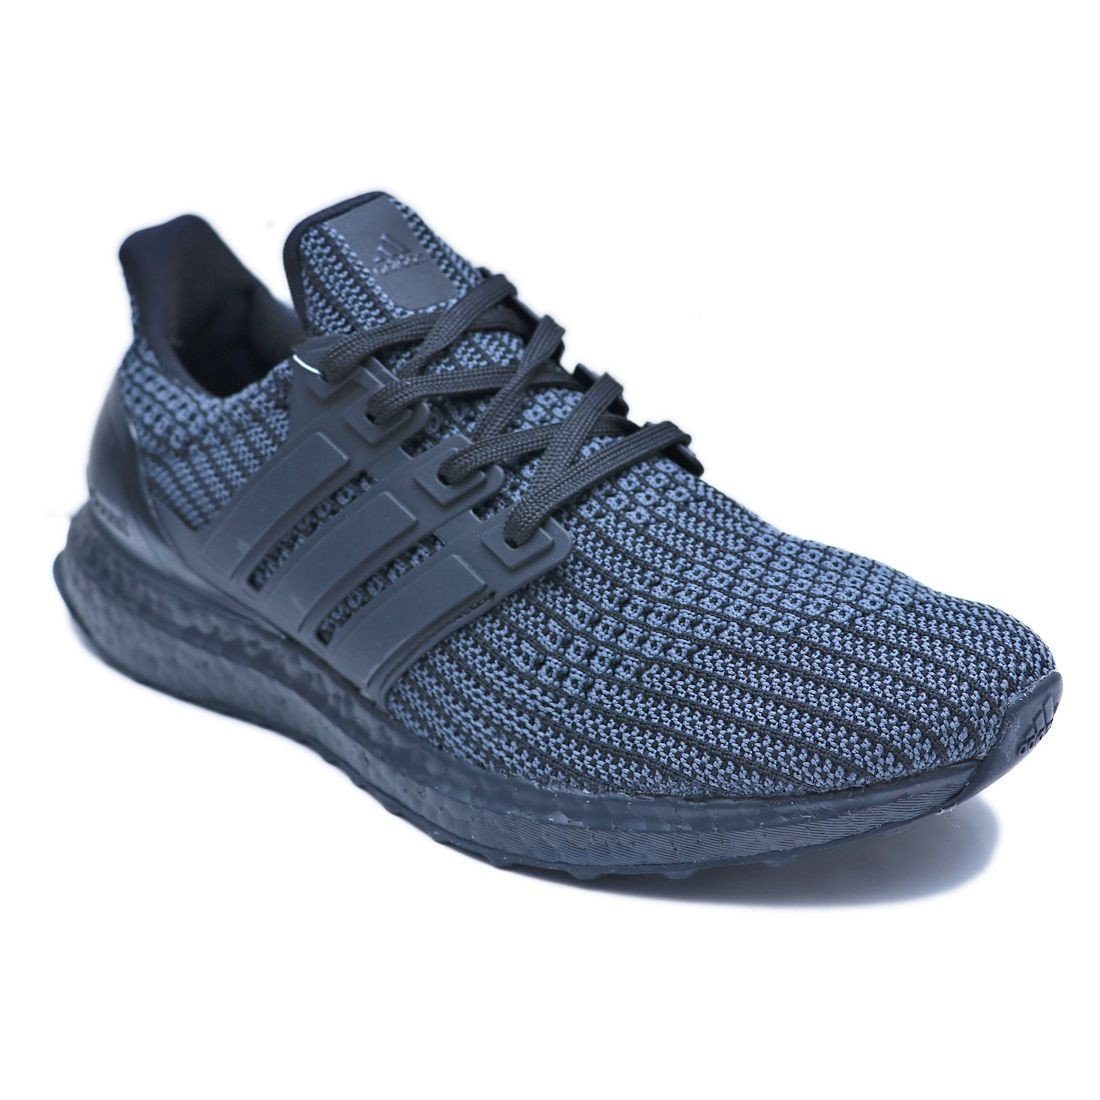 size 40 a13c4 3c96a Adidas UltraBoost 4.0 Low Black Running Shoes - Buy Adidas UltraBoost 4.0  Low Black Running Shoes Online at Best Prices in India on Snapdeal